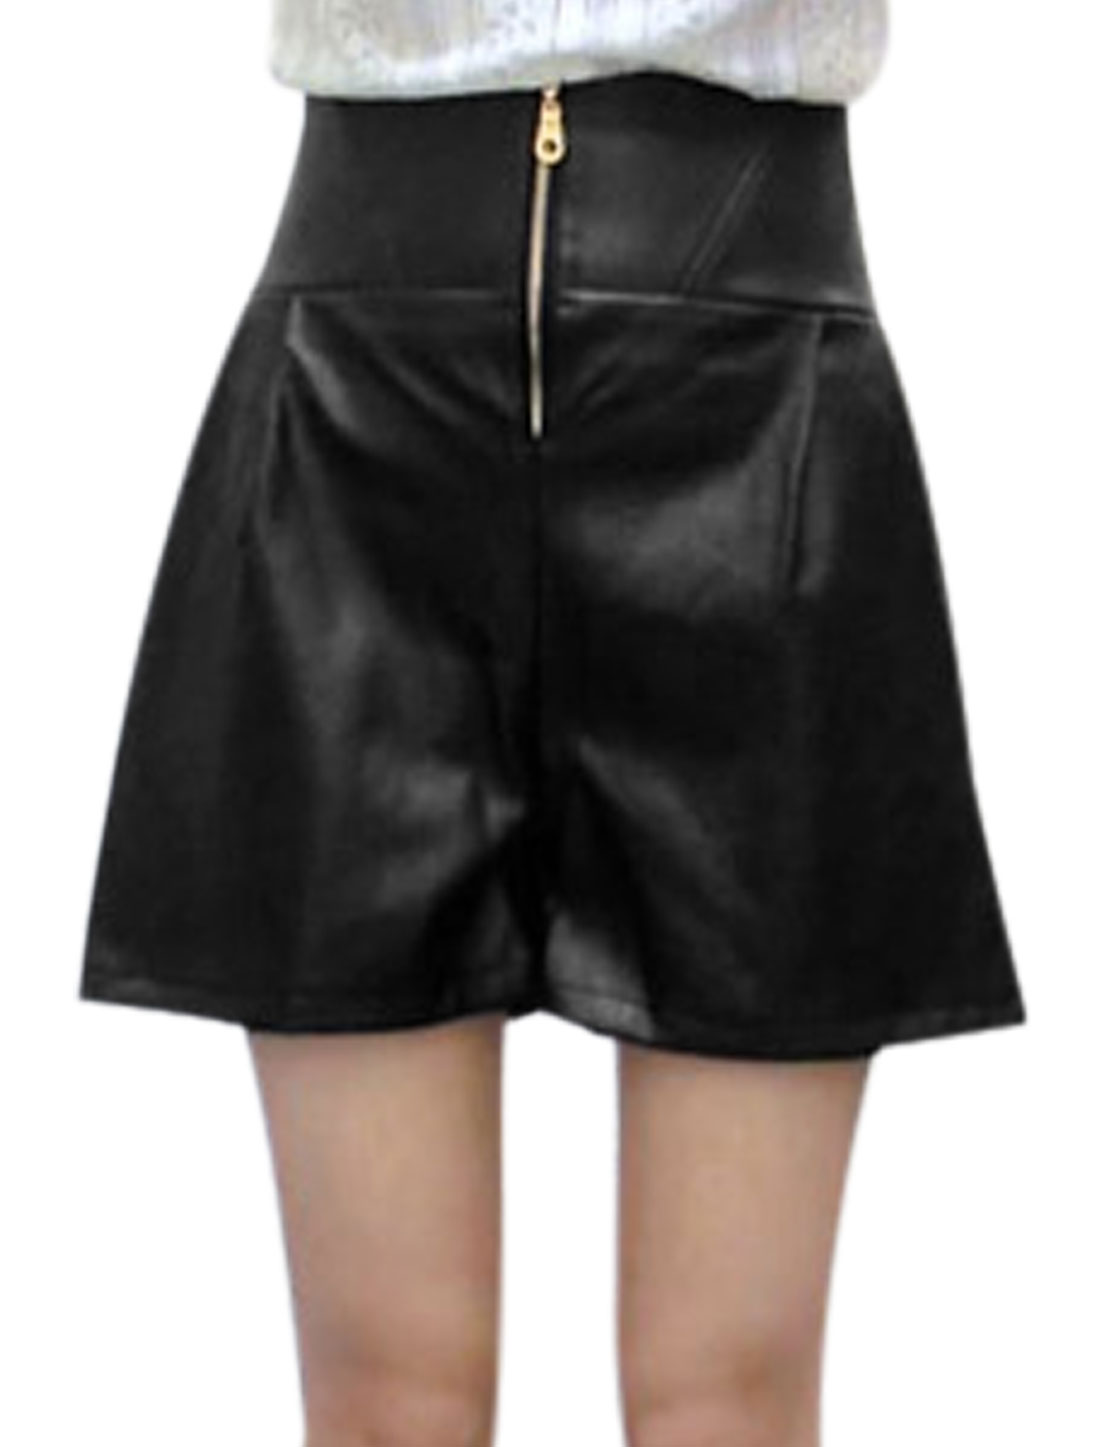 Lady High Waist Zip Fly Front Fashion Imitation Leather Shorts Black M